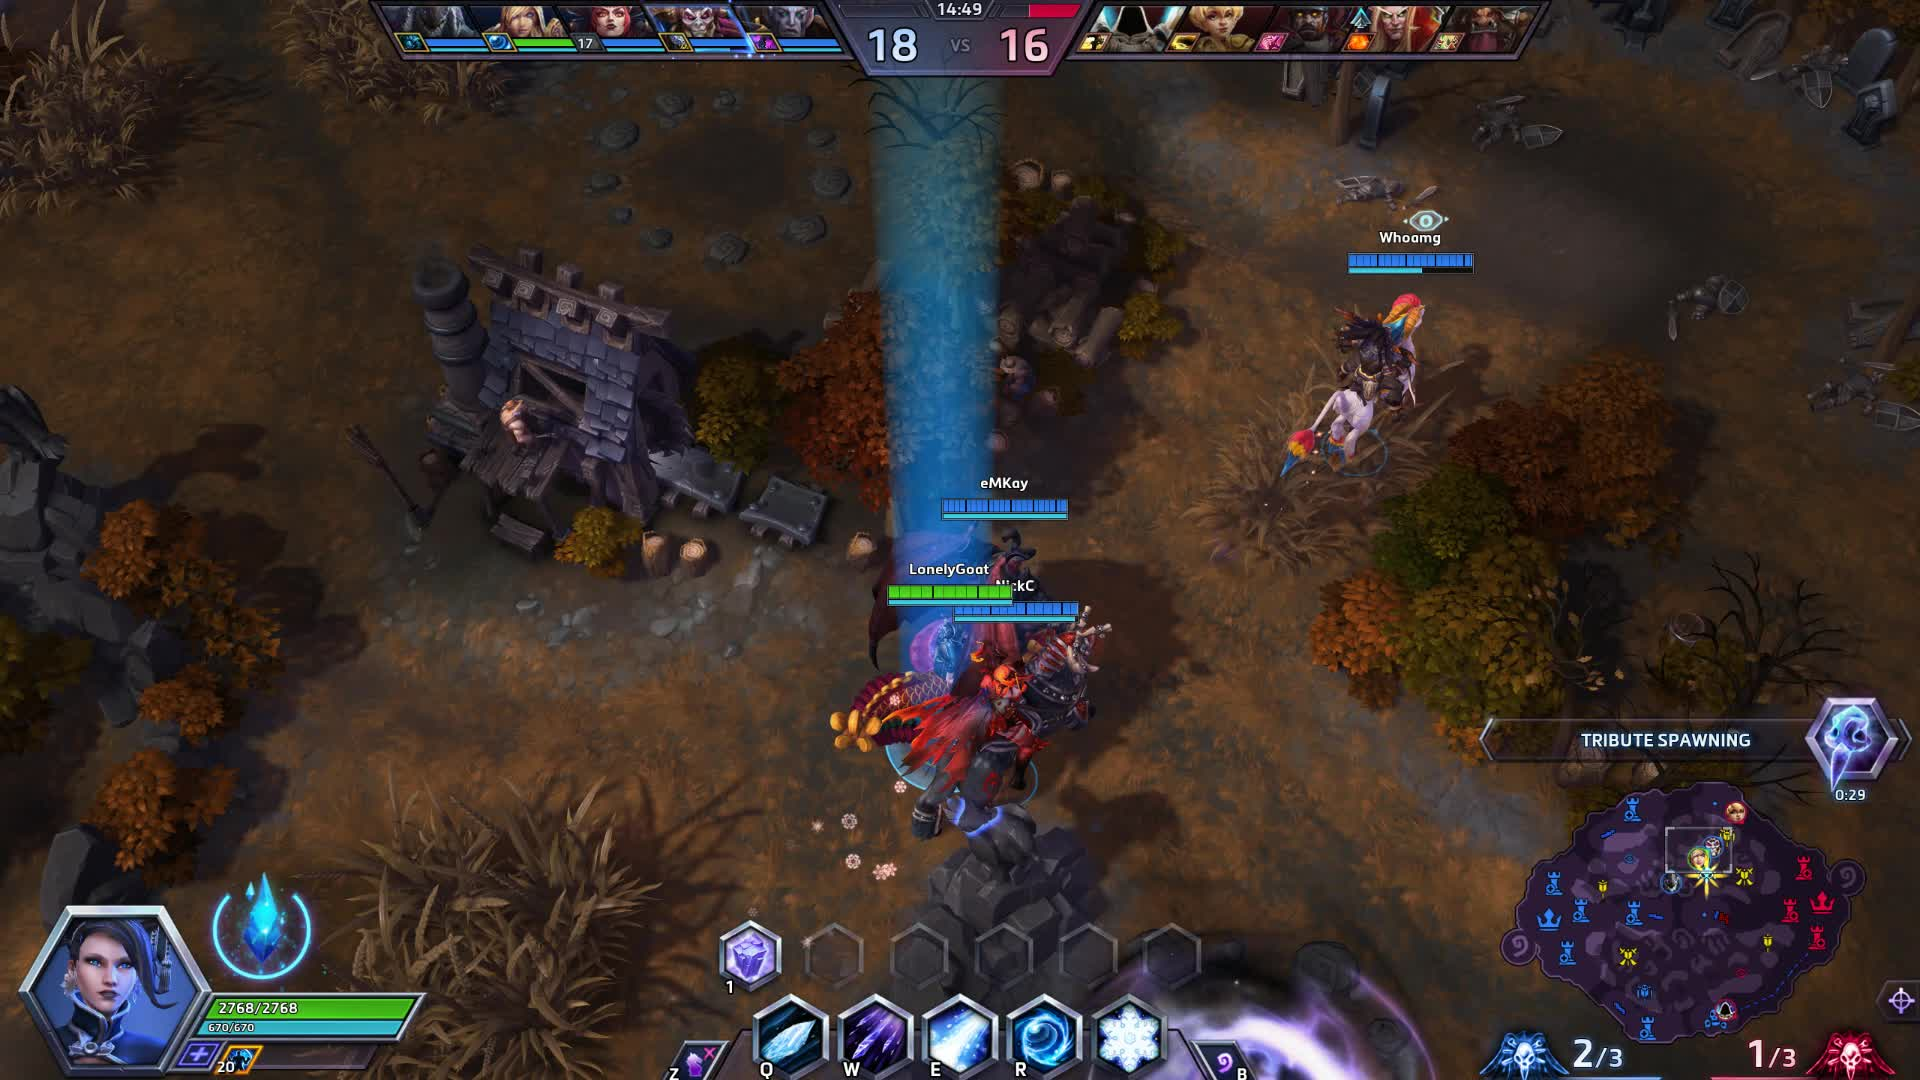 heroesofthestorm, vlc-record-2019-02-08-20h18m51s-Heroes of the Storm 2019.02.06 - 22.33.45.02.DVR.mp4- GIFs